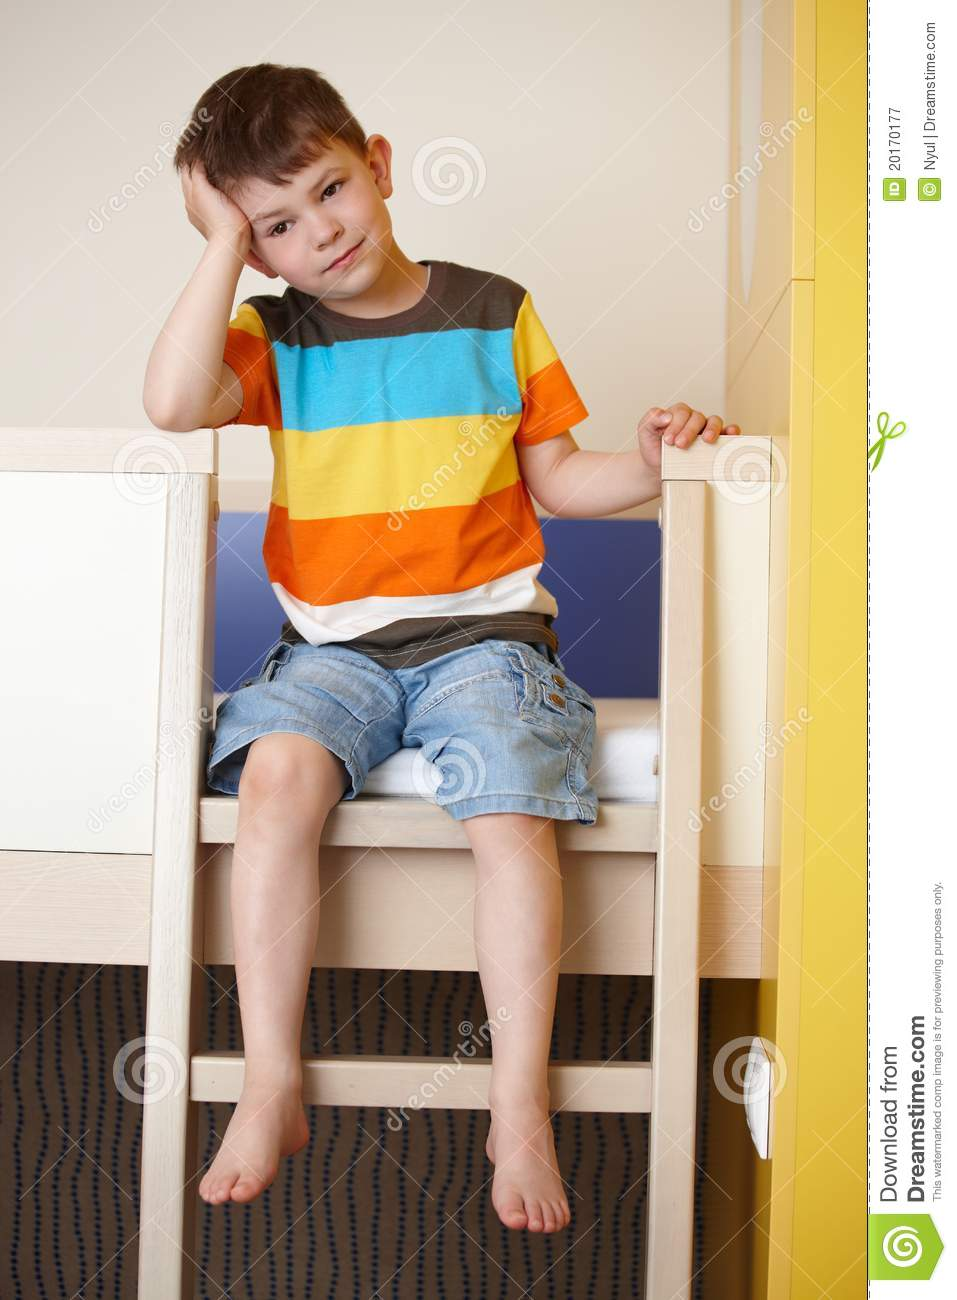 sleepy little boy on bunk bed stock image image 20170177